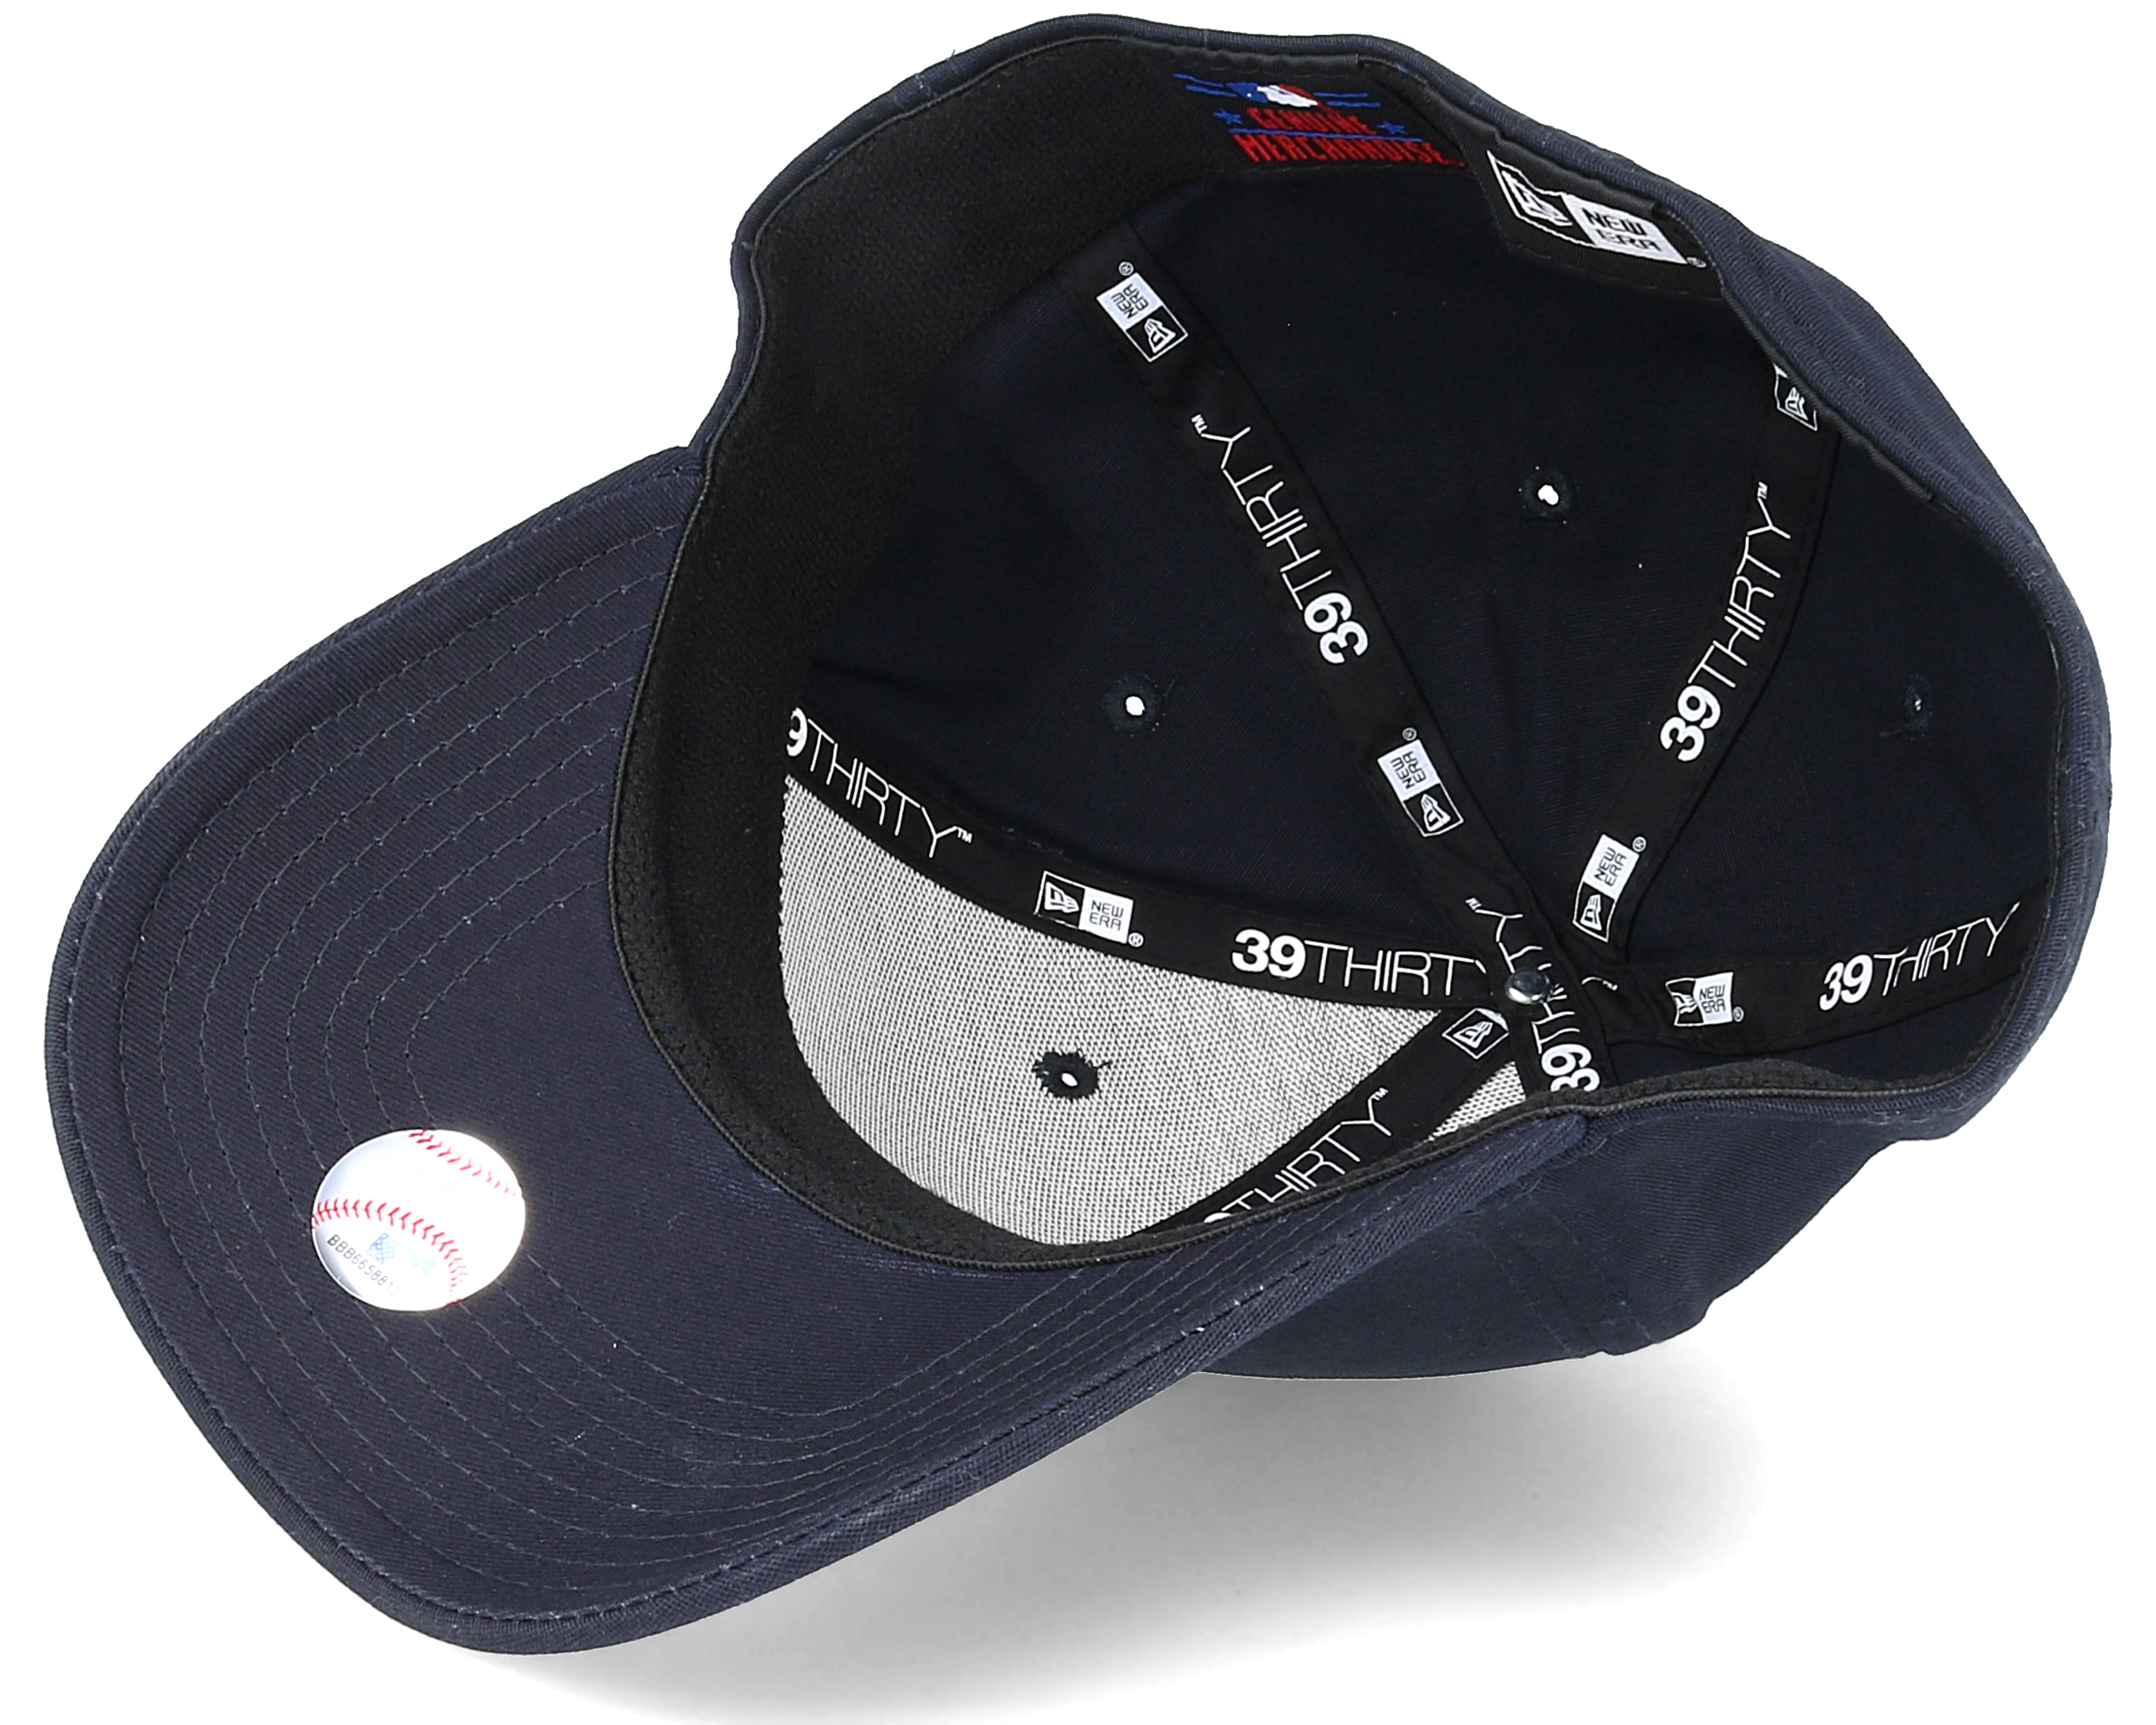 3eed3a0075c ... czech ny yankees 39thirty navy new era caps hatstore 0a24a 58a59